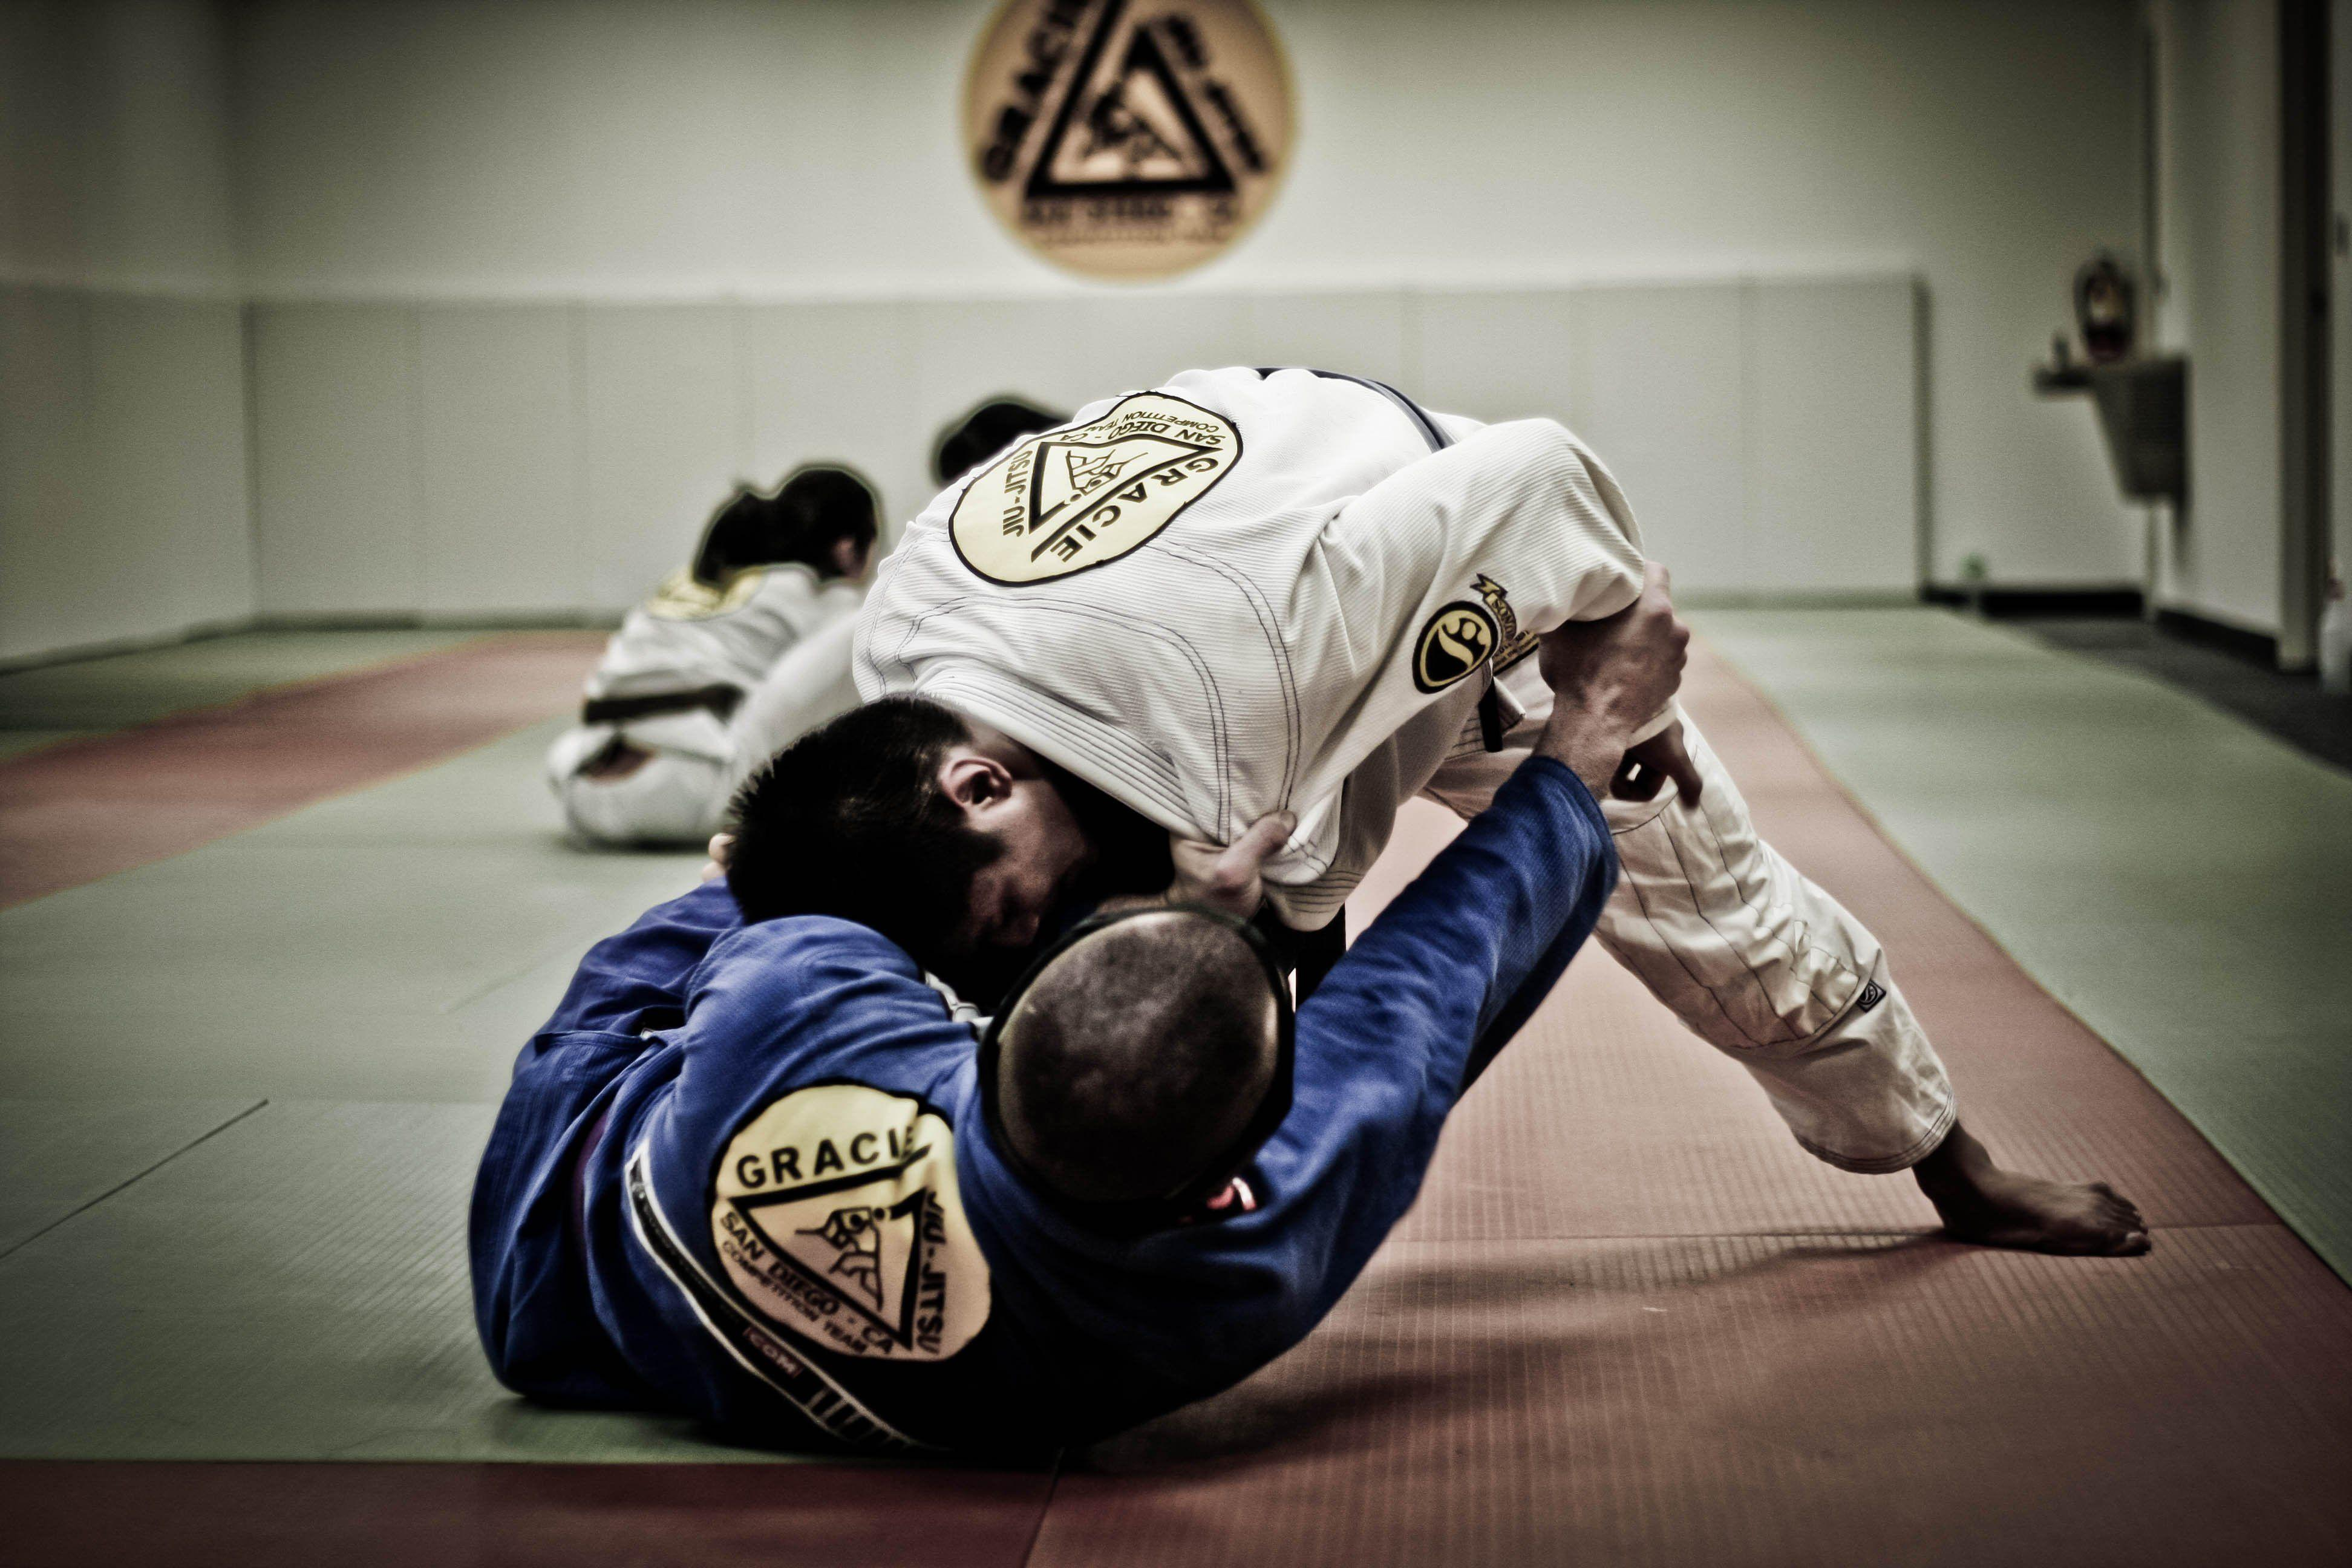 Jiu jitsu wallpapers